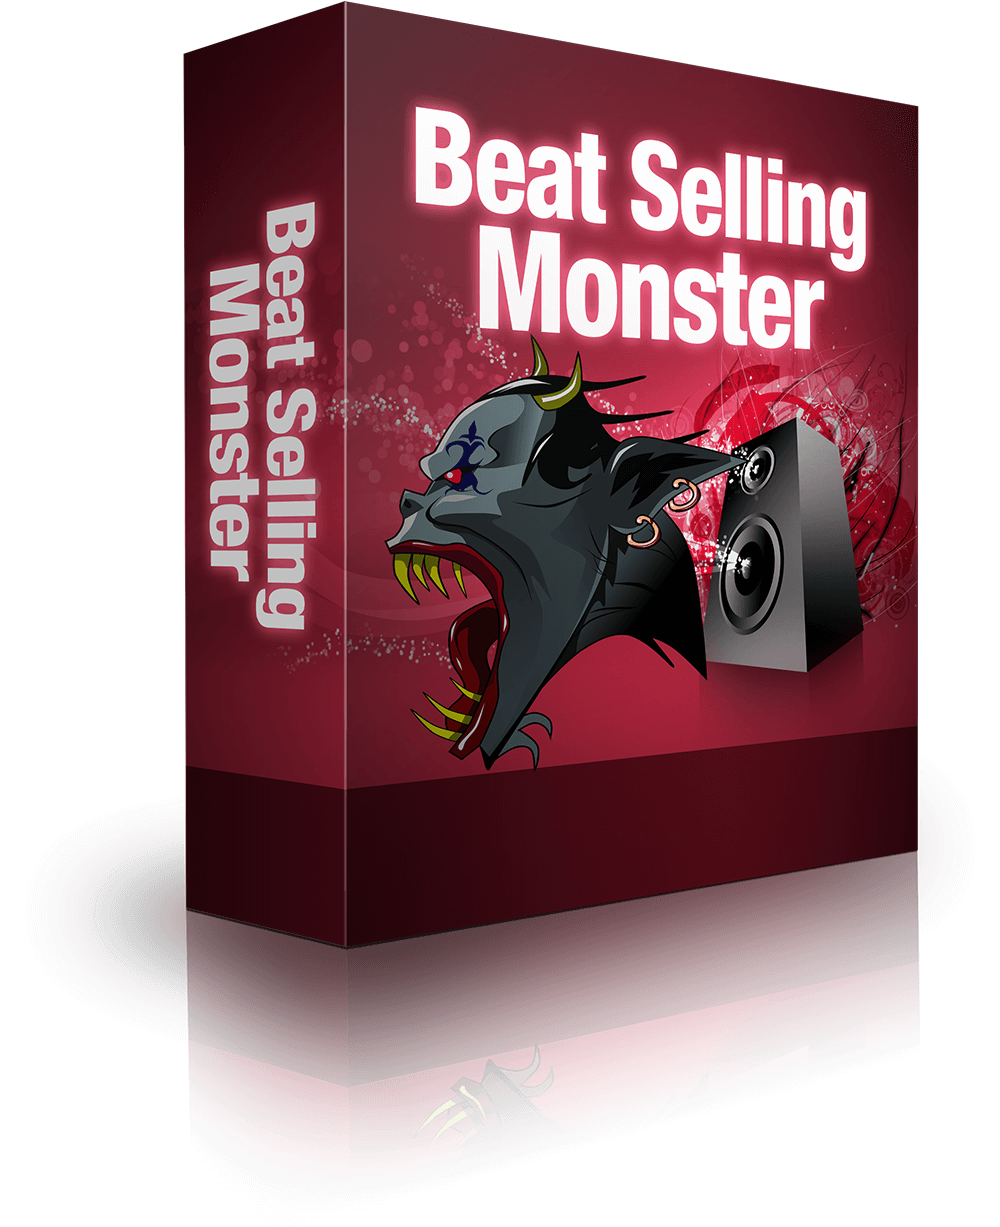 Buy Beat Selling Monster Below